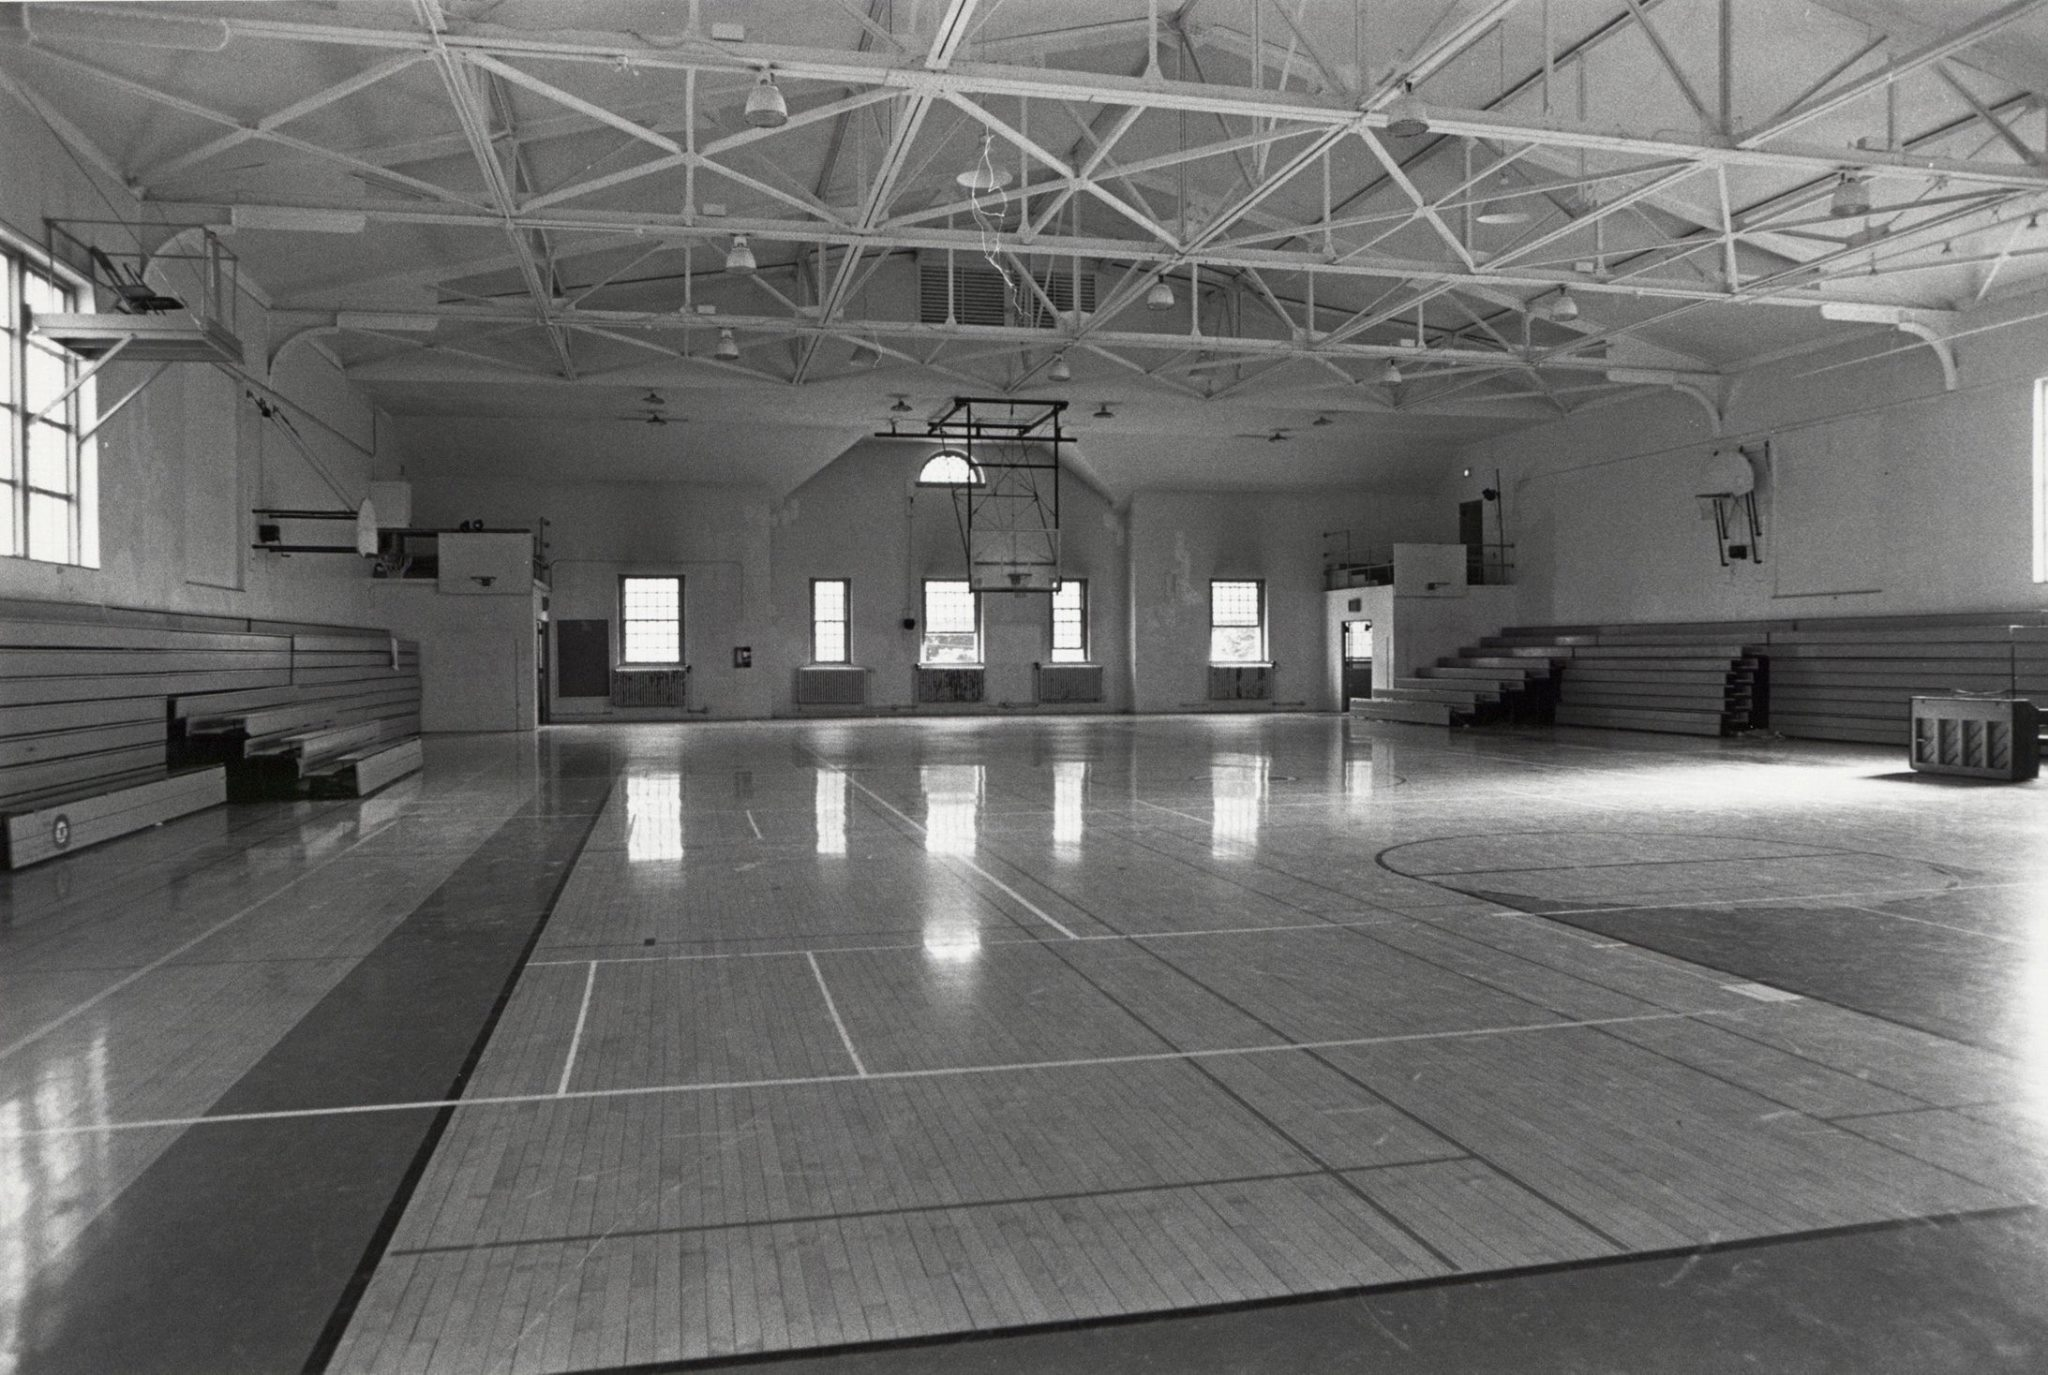 #TBT to when the Weiss Center for the Arts was the Alumni Gymnasium from 1929-1981 #dsonphotos  #weisscenter https://t.co/EkngldLP0y